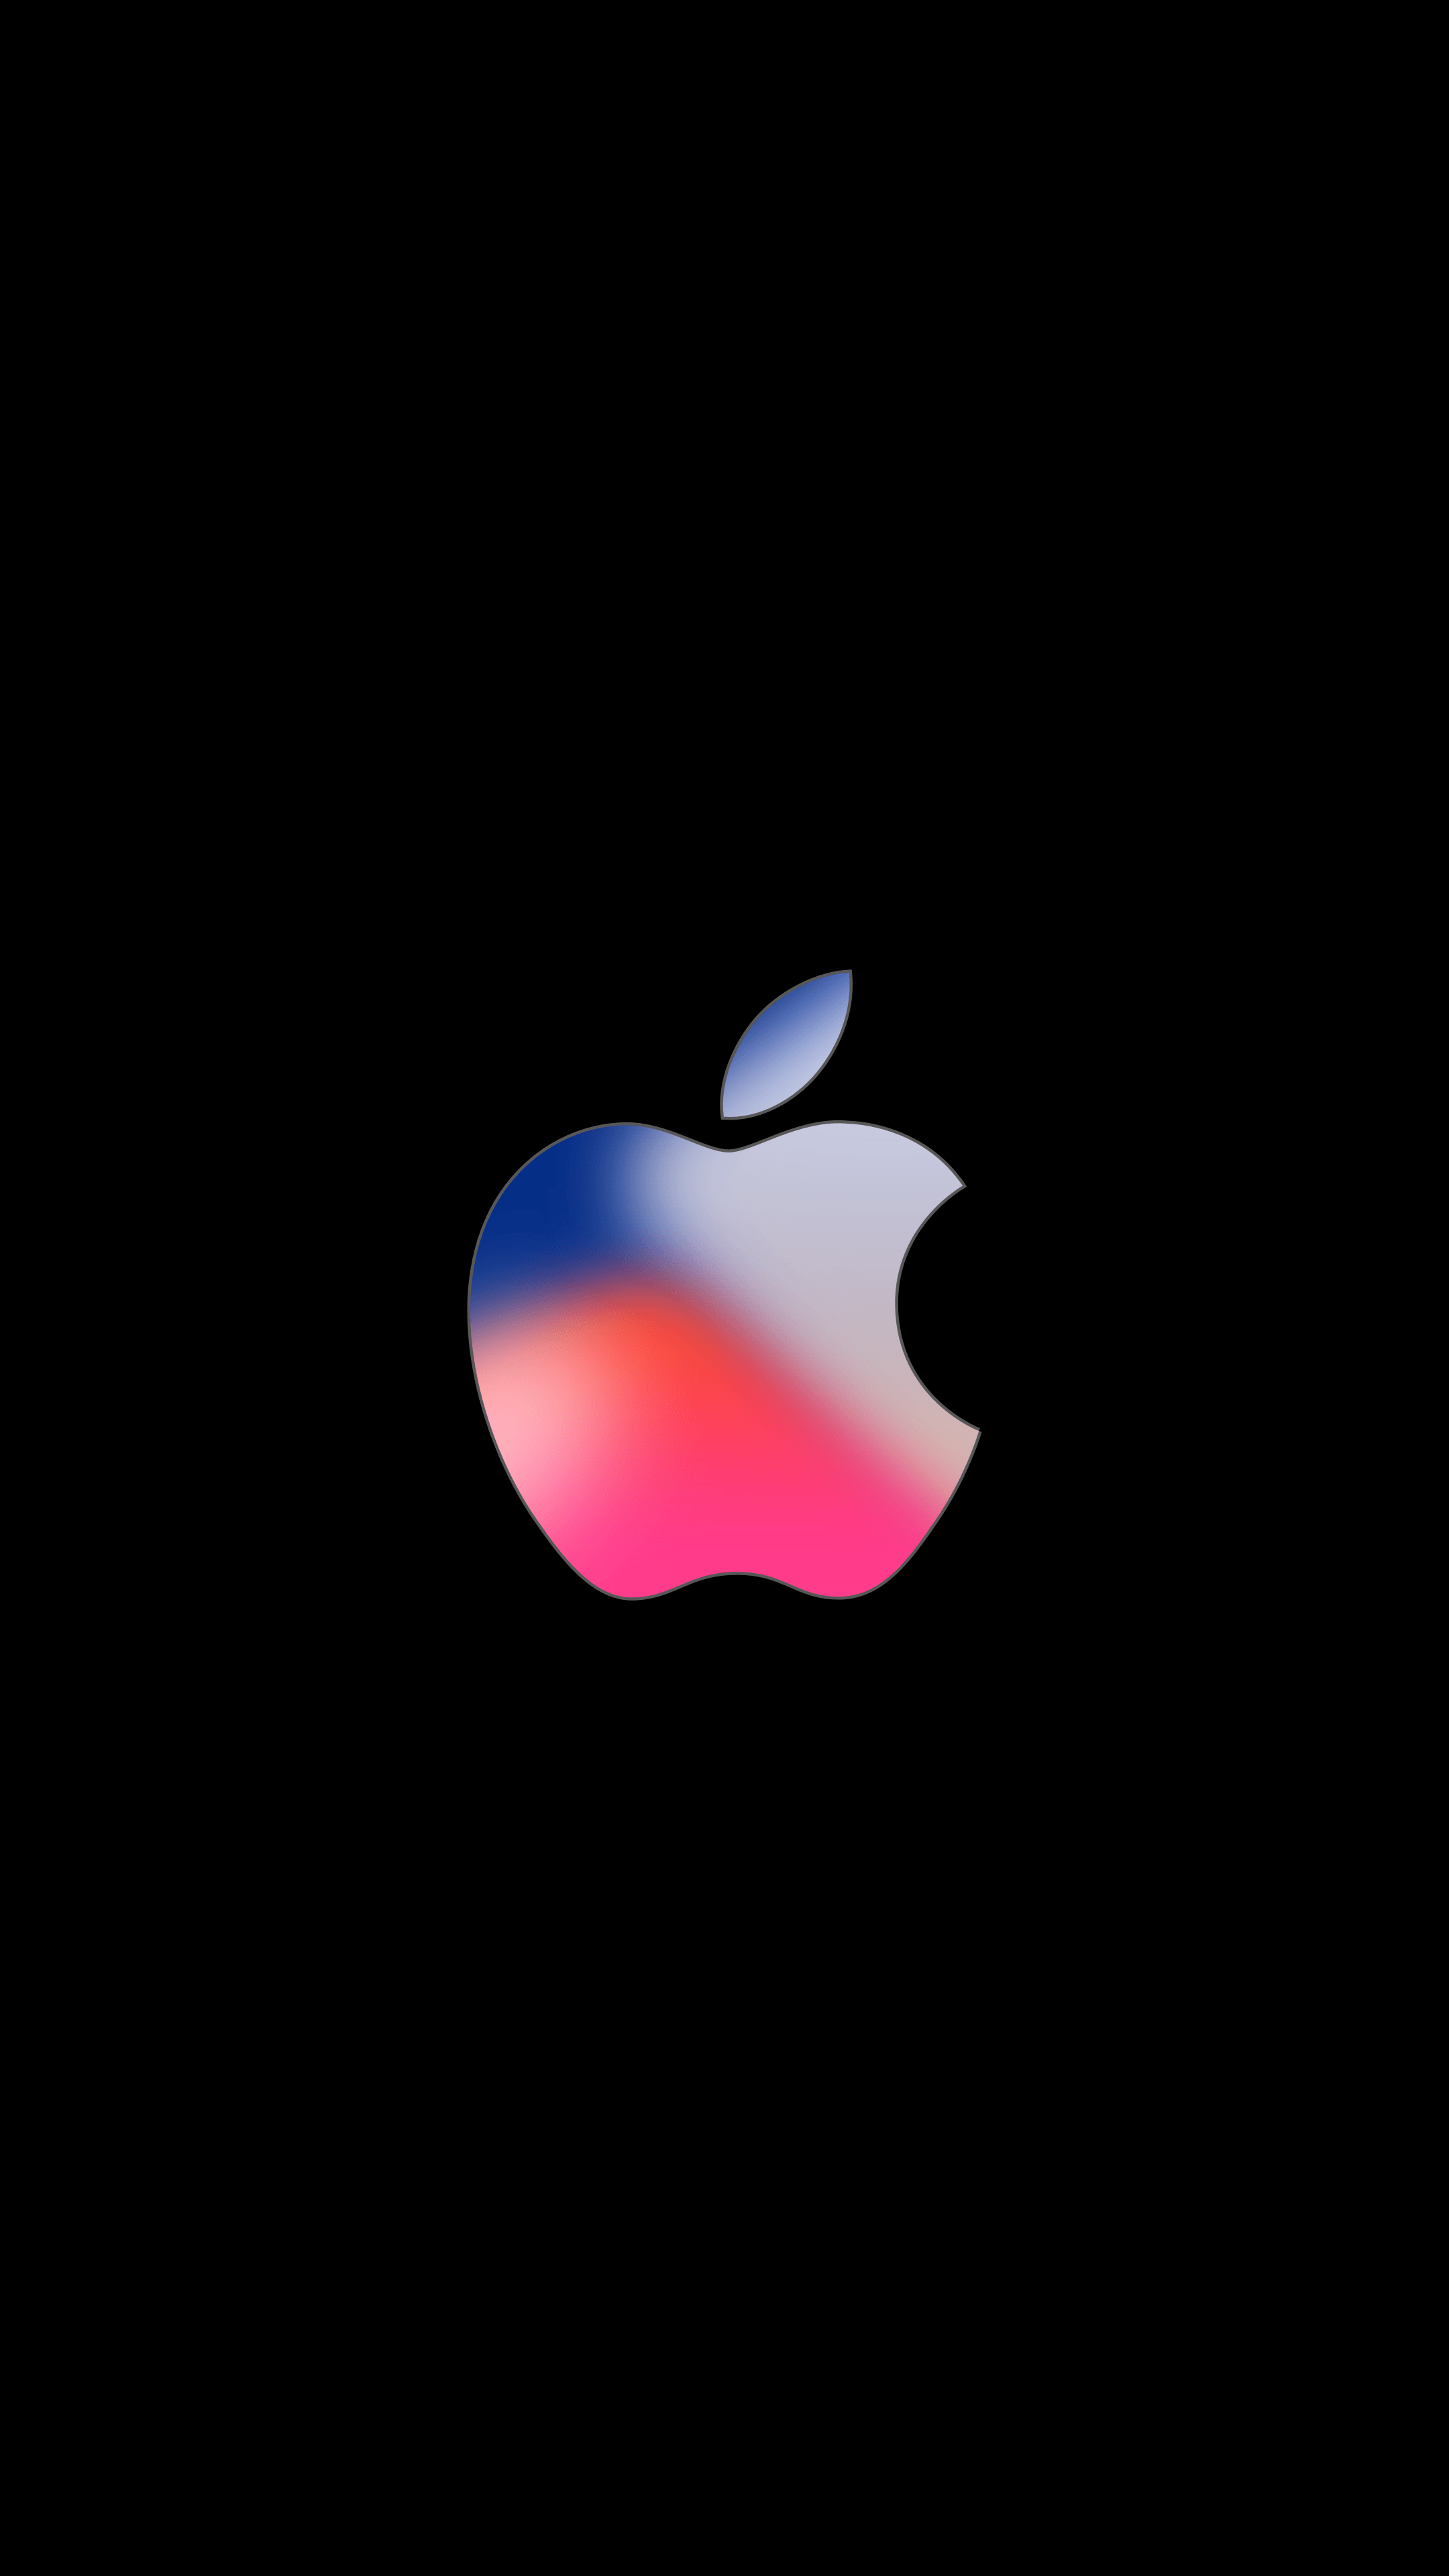 iPhone Apple Wallpapers   Top Free iPhone Apple Backgrounds ...